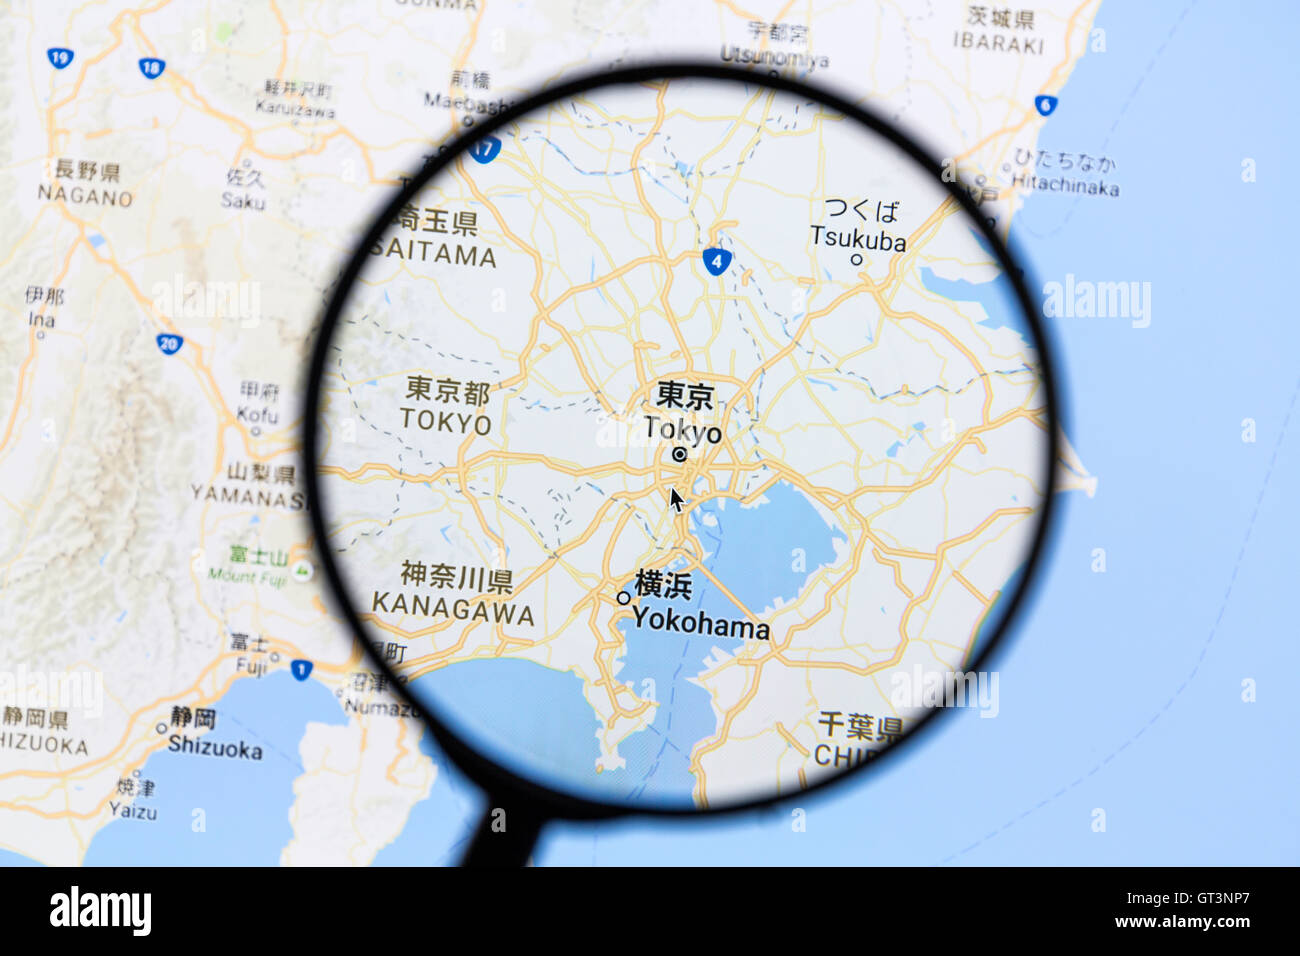 Tokyo on Google Maps under a magnifying glass Stock Photo: 118096895 ...